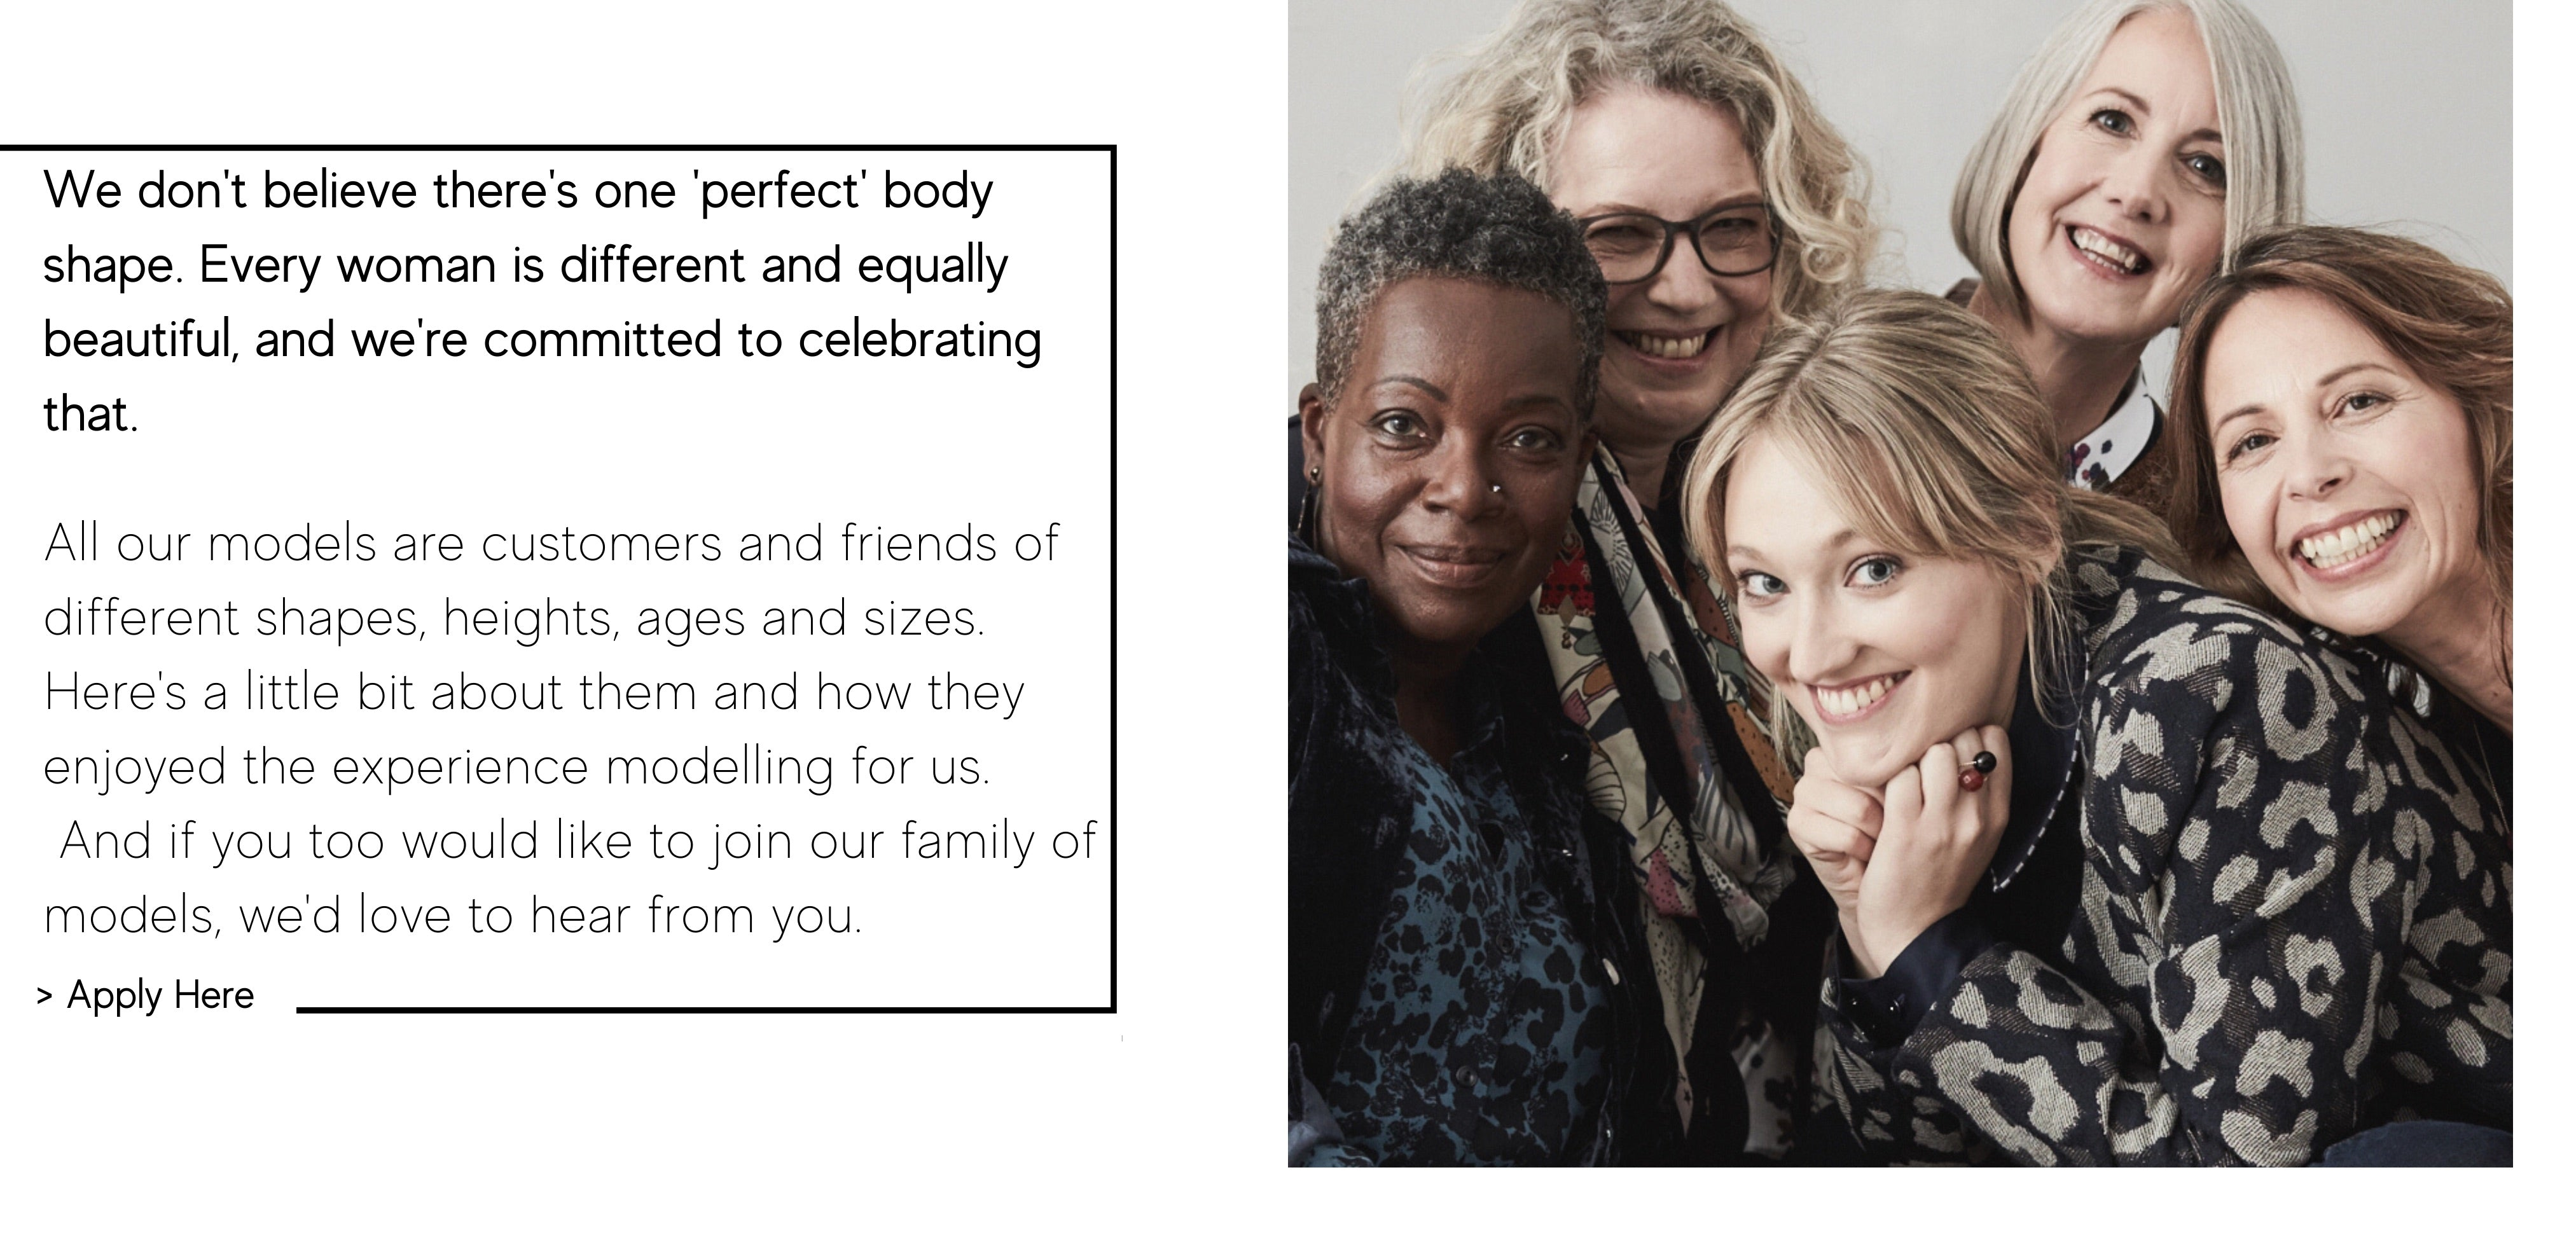 We don't believe there's one 'perfect' body shape. Every woman is different and equally beautiful, and we're committed to celebrating that.   All our models are customers and friends of different shapes, heights, ages and sizes.  Here's a little bit about them and how they enjoyed the experience modelling for us.  And if you too would like to join our family of models, we'd love to hear from you.